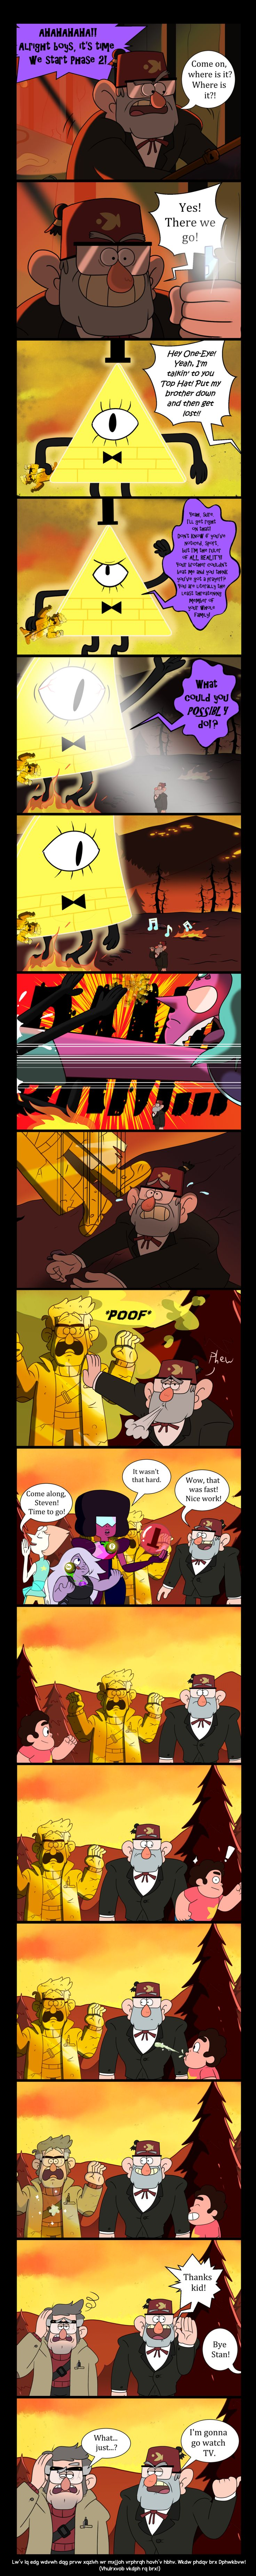 But how did Stan have the whistle?! There's an amazing AU here waiting to be written, for sure...